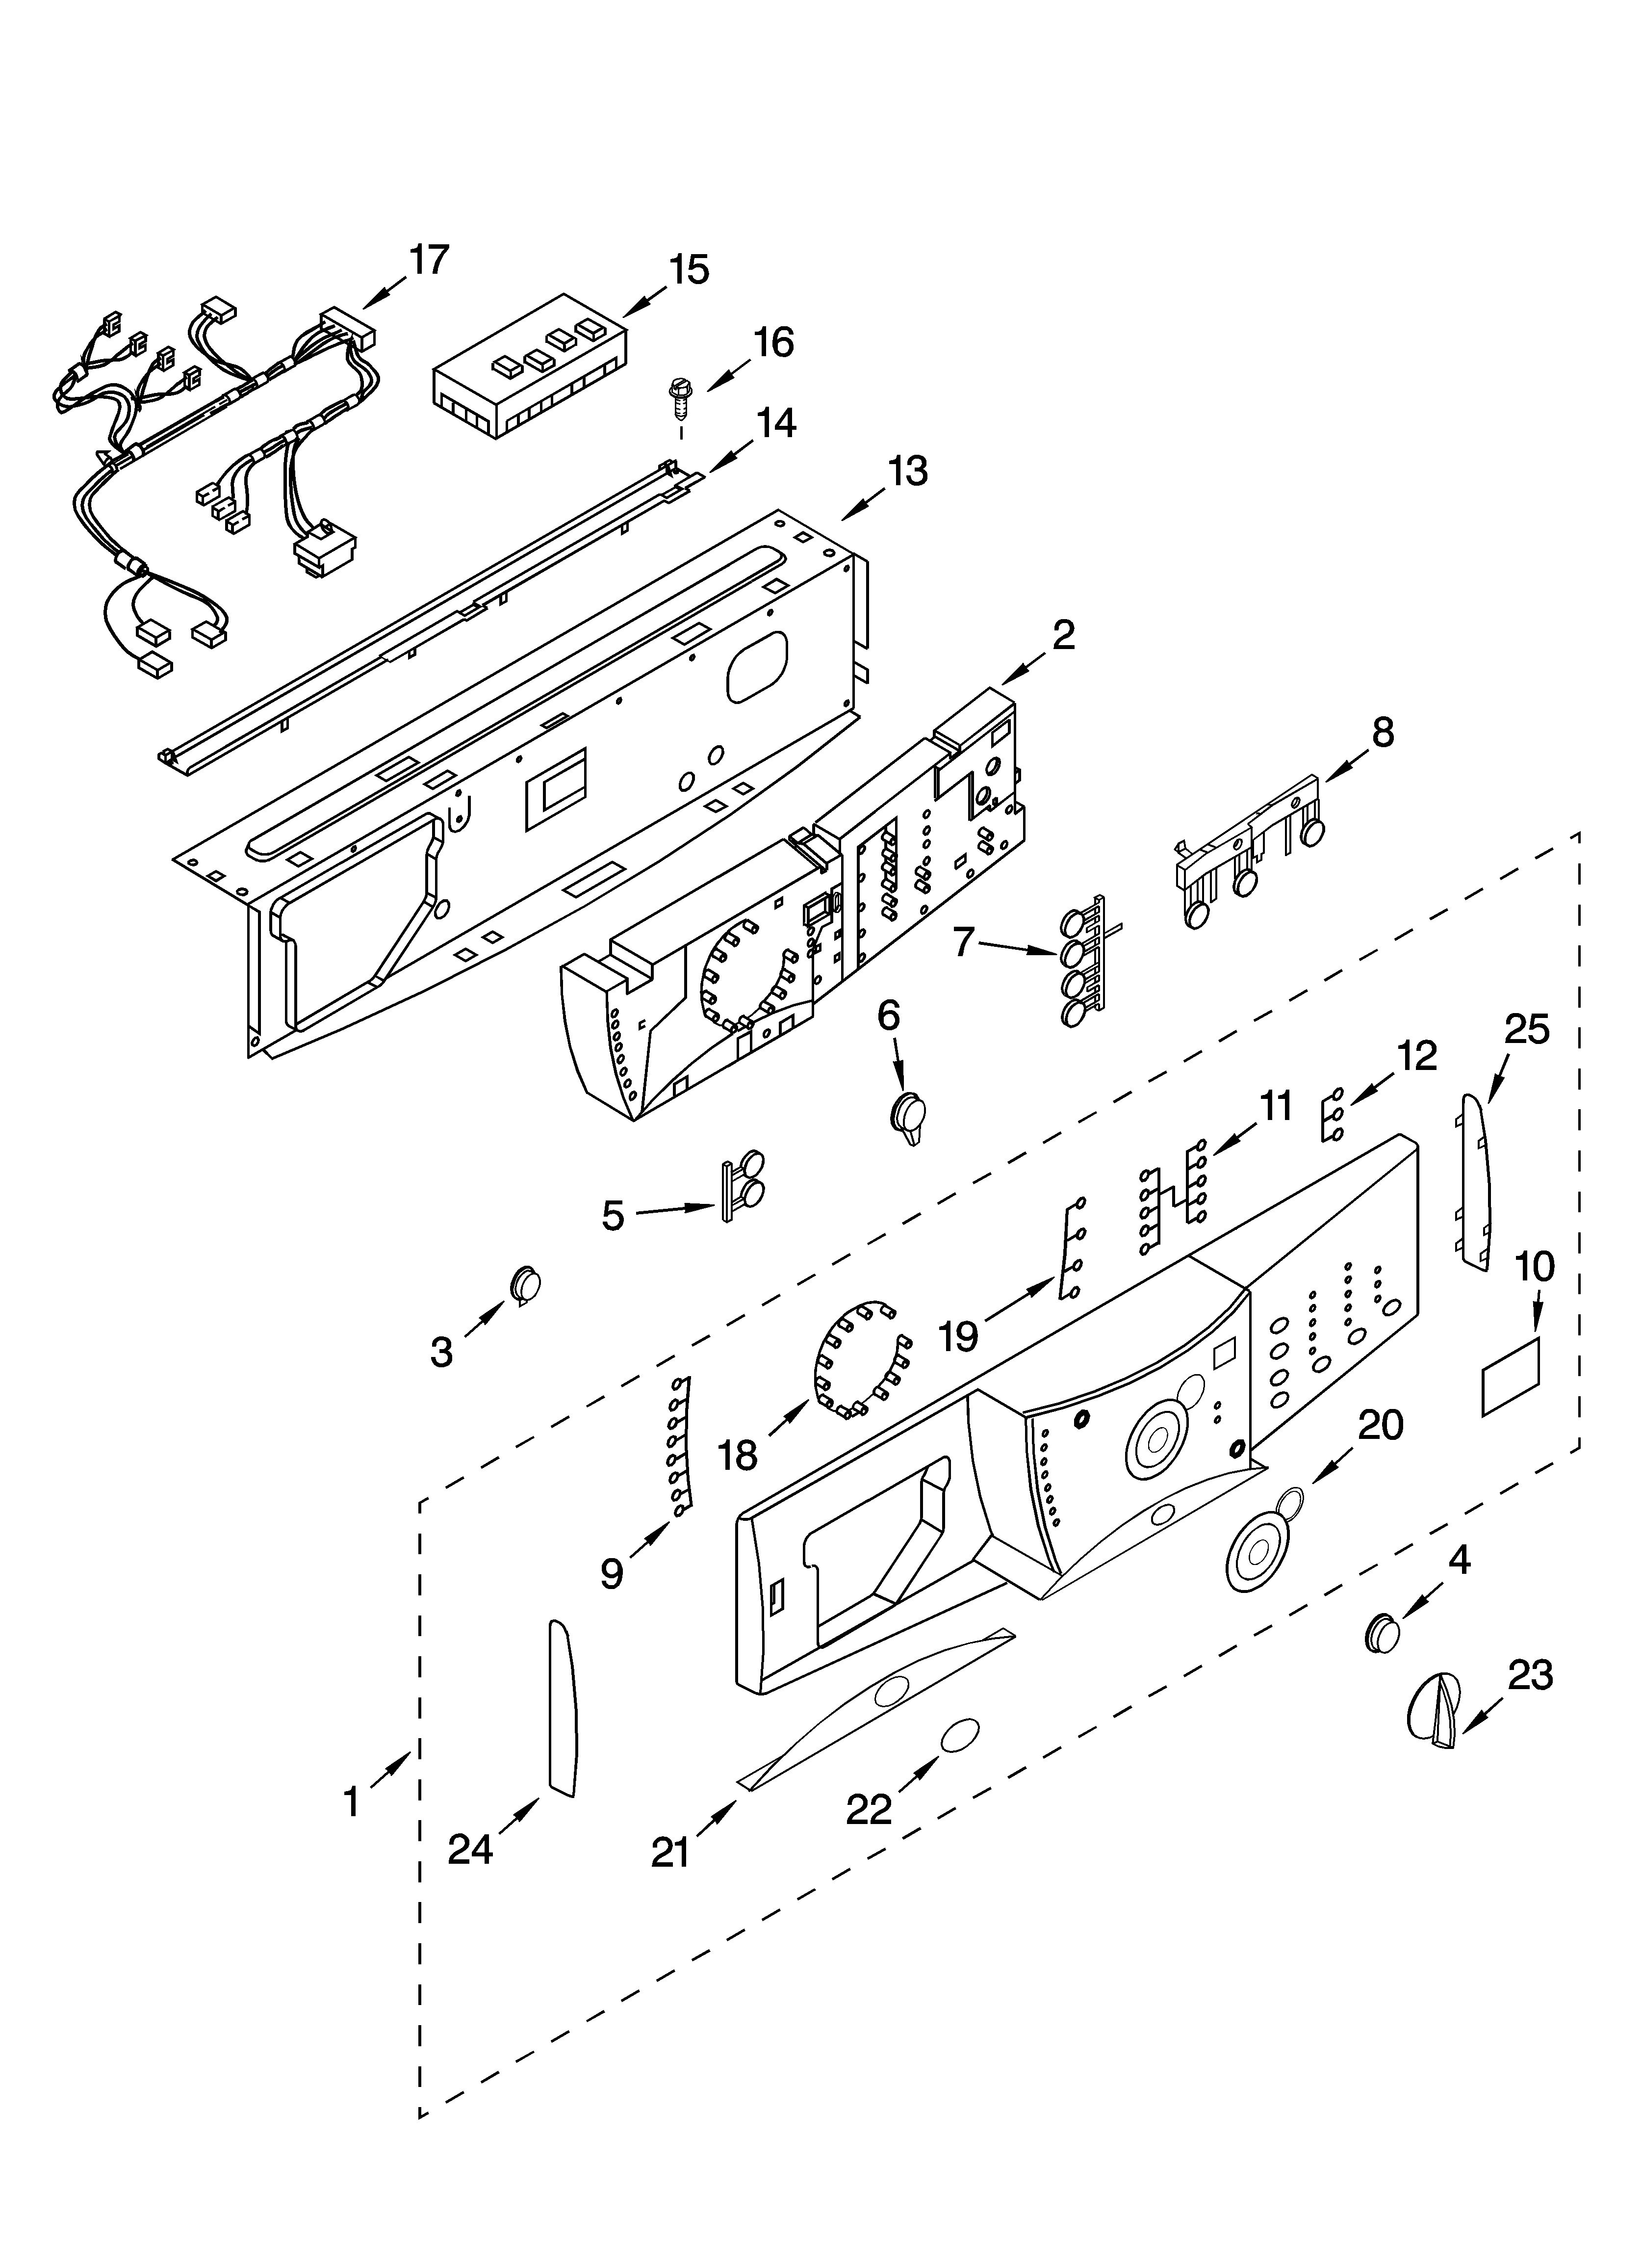 Wiring Schematic For Whirlpool Duet Washer -Need A Picture Of 1996 Chevy  454 Wiring Diagram Wiring Diagrams   Begeboy Wiring Diagram SourceBegeboy Wiring Diagram Source